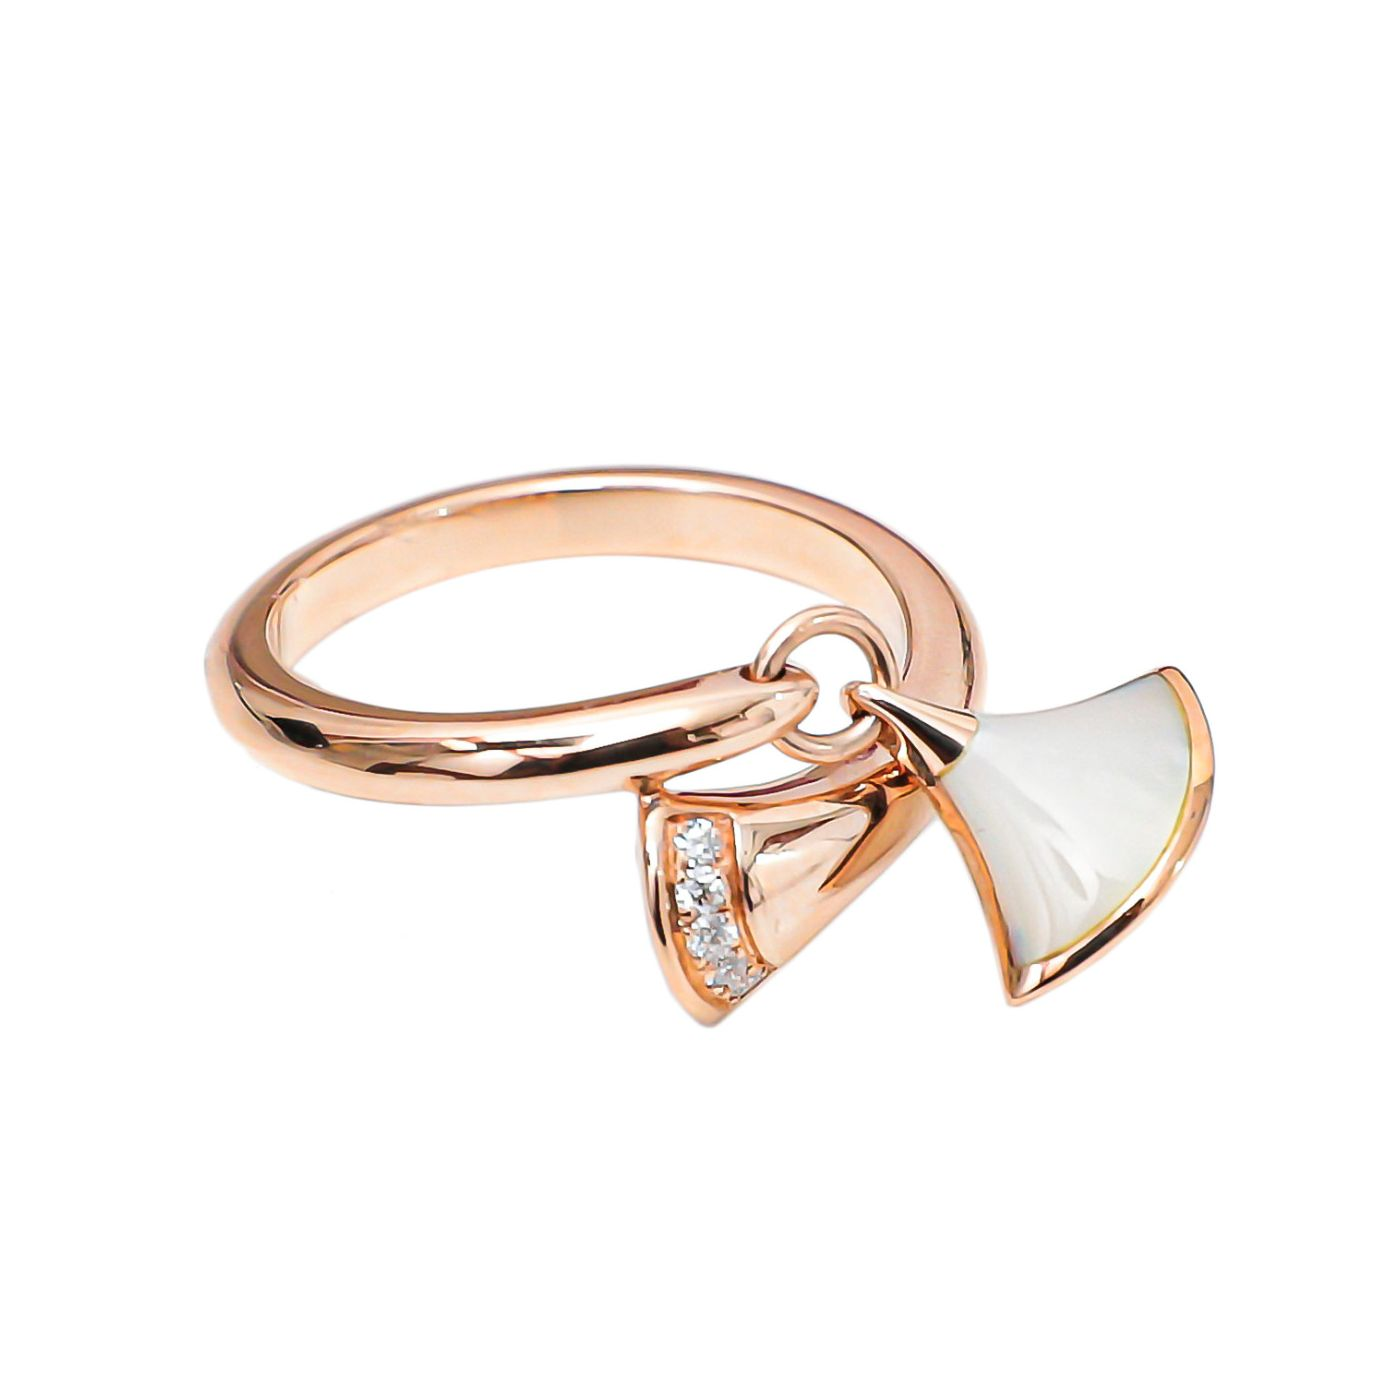 Bvlgari 18k Pink Gold W/ Diamonds Diva's Dream Ring